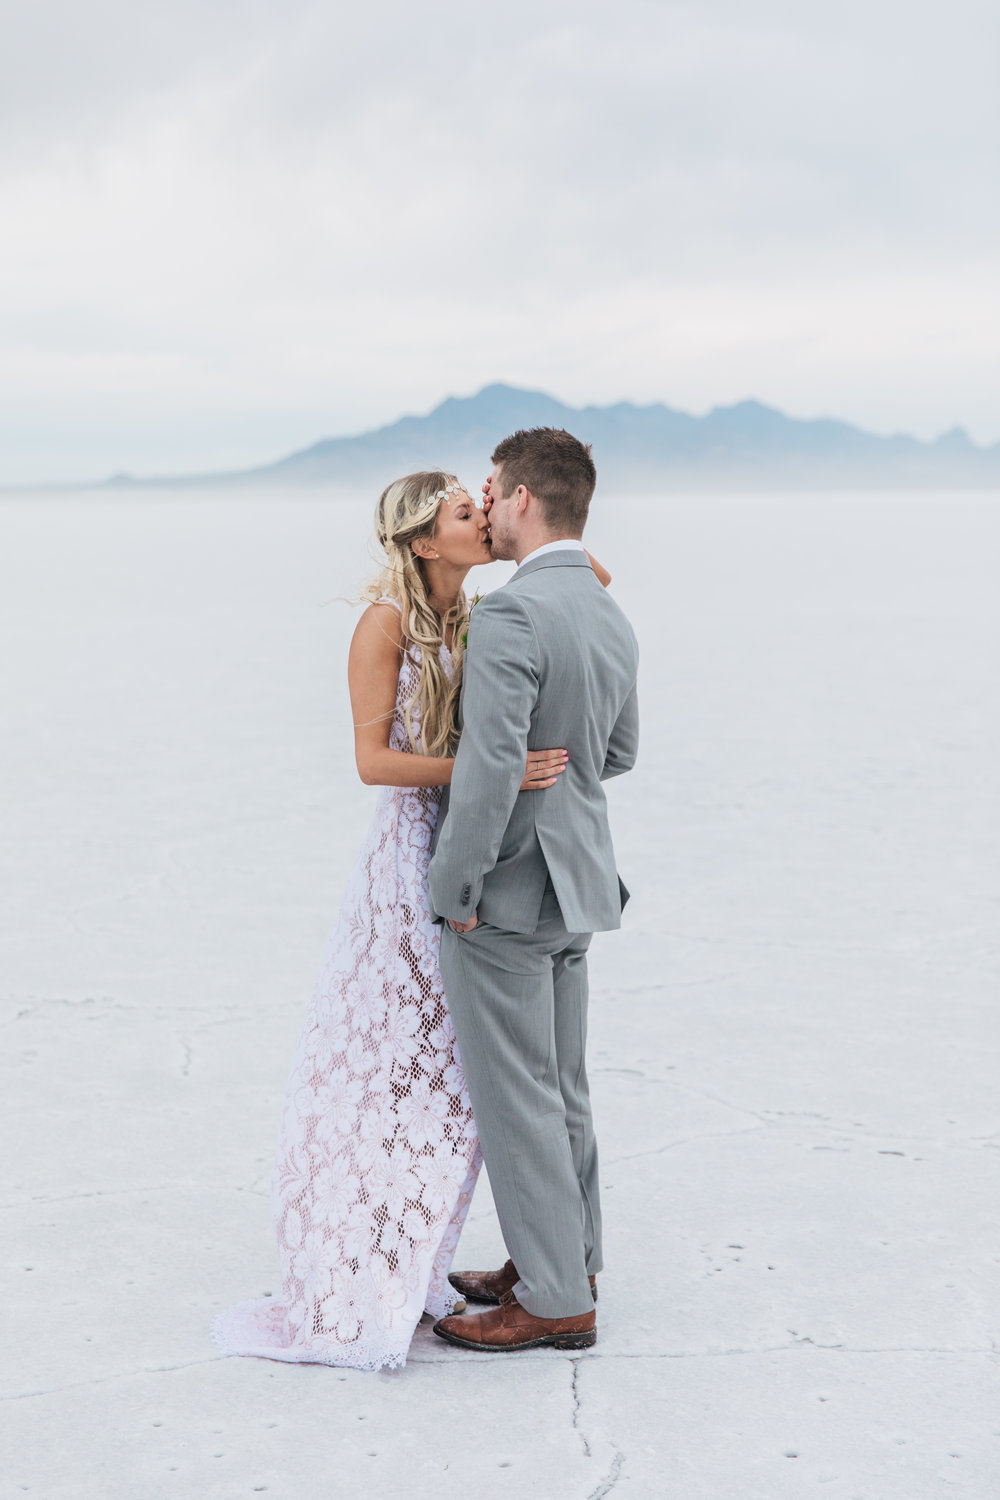 Fine art adventure wedding photographers Bonneville Salt Flats